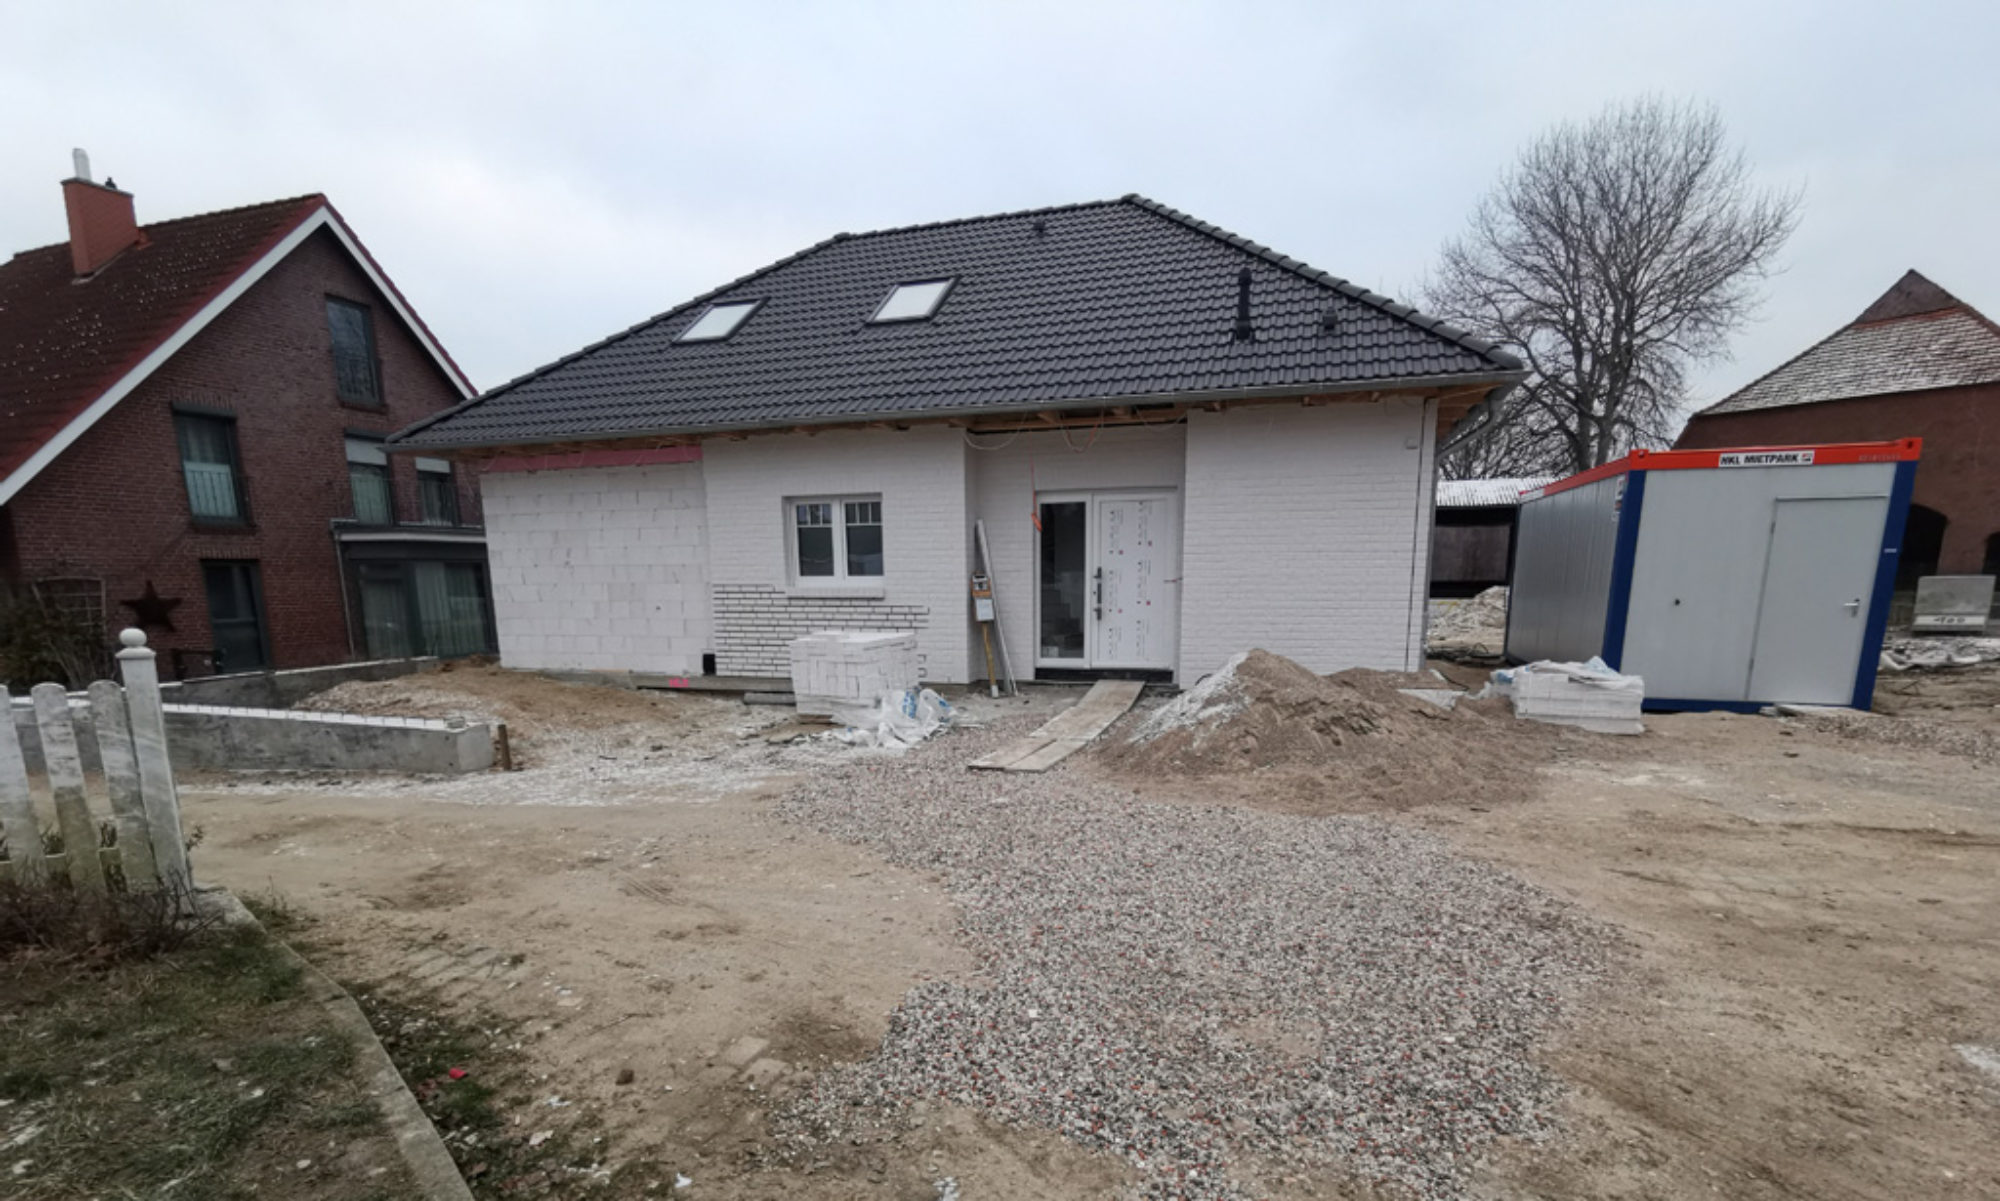 Bauen mit Town&Country Traumhausschmiede in Selent